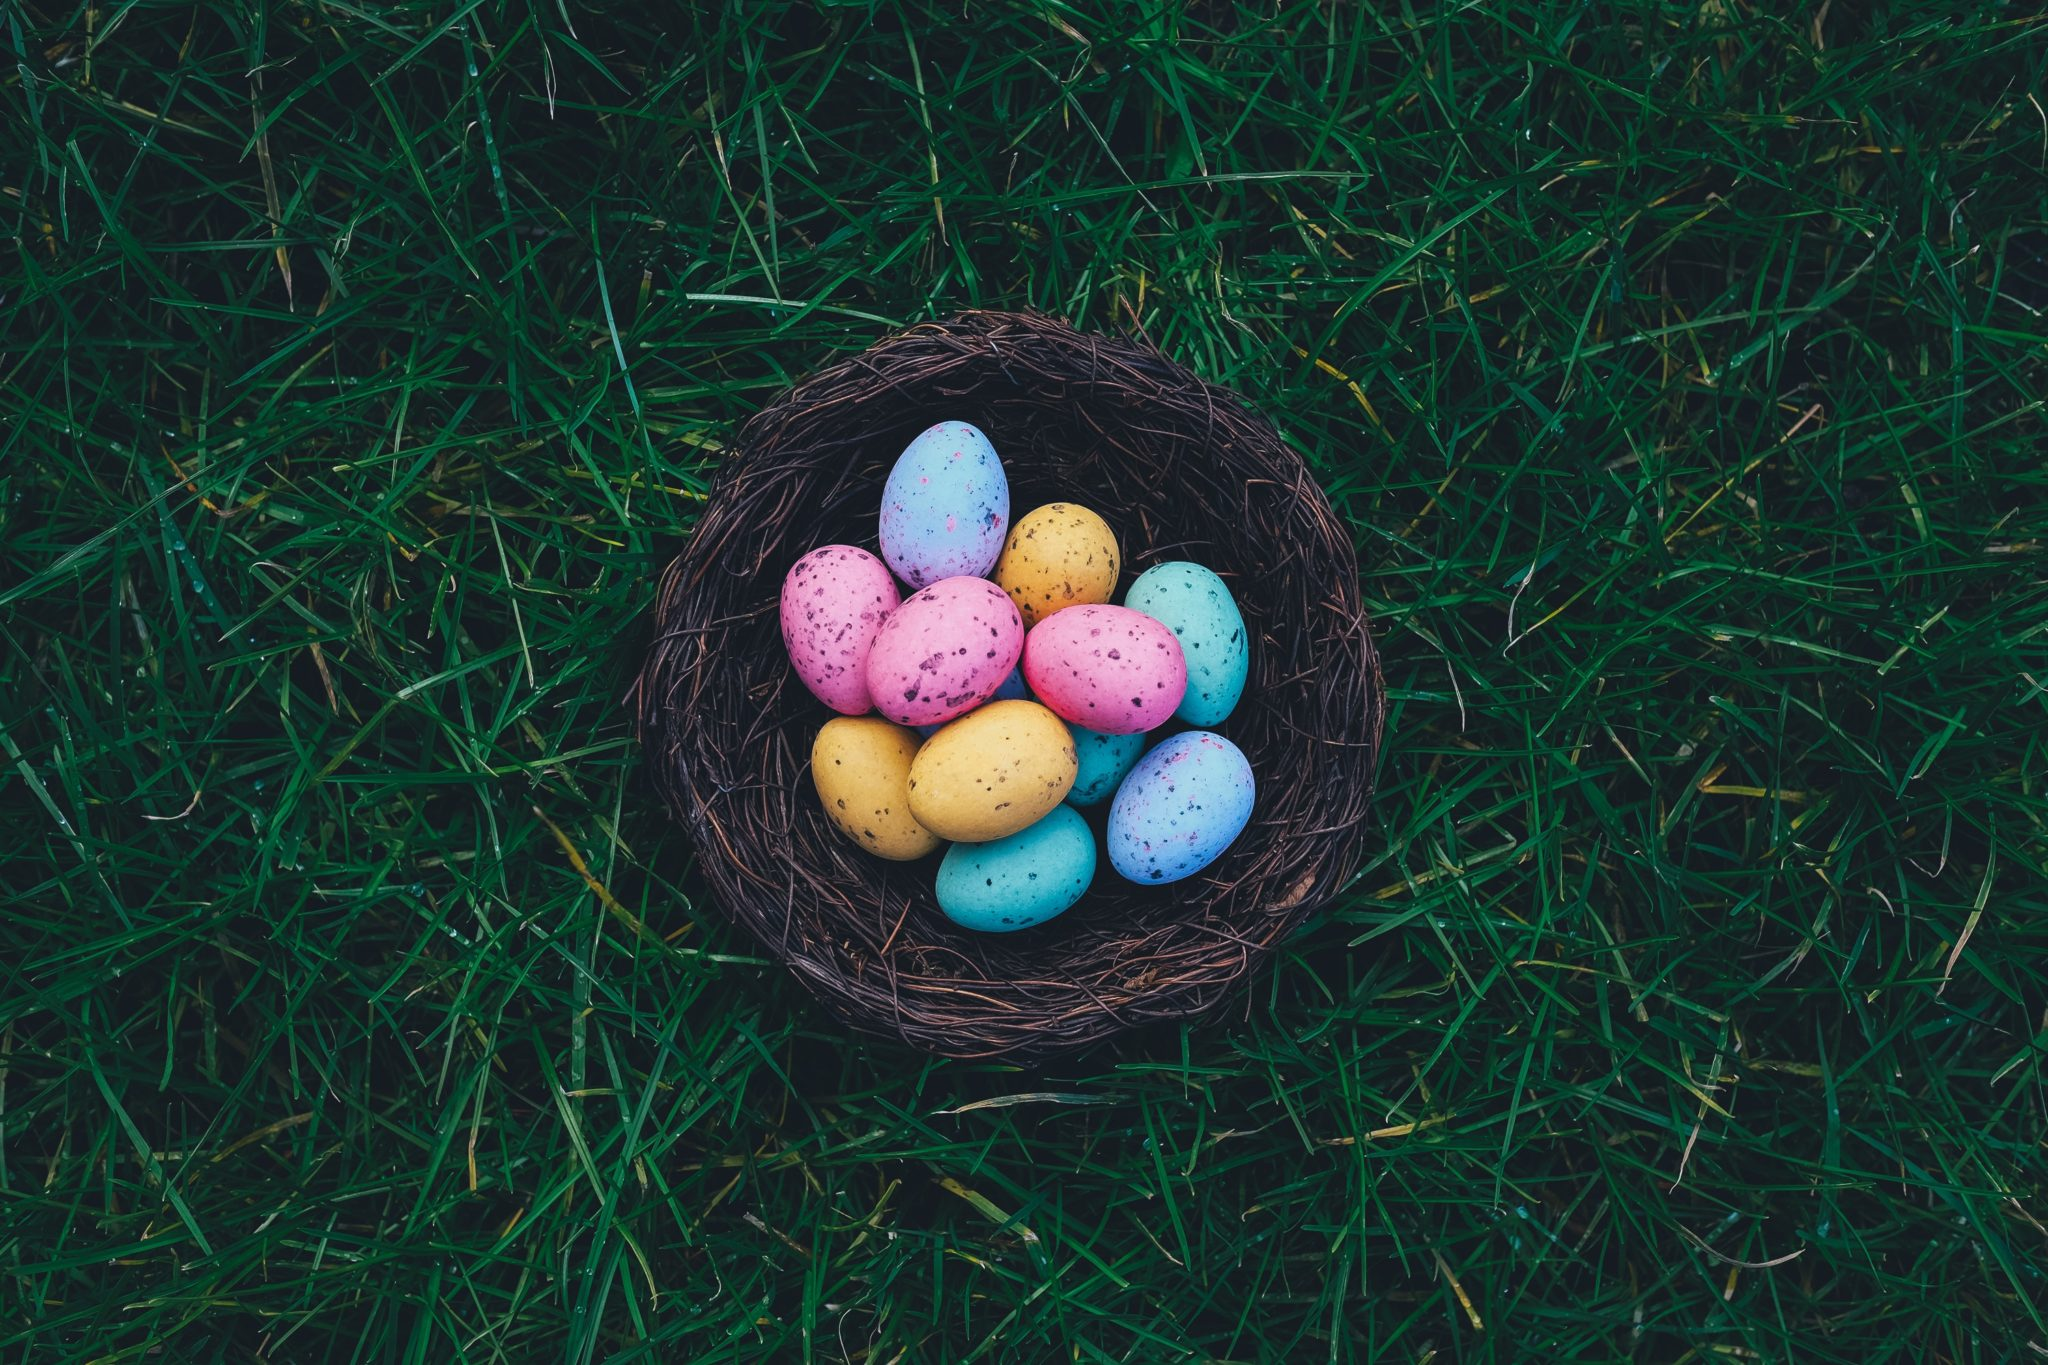 Colorful eggs in a brown basket on green grass